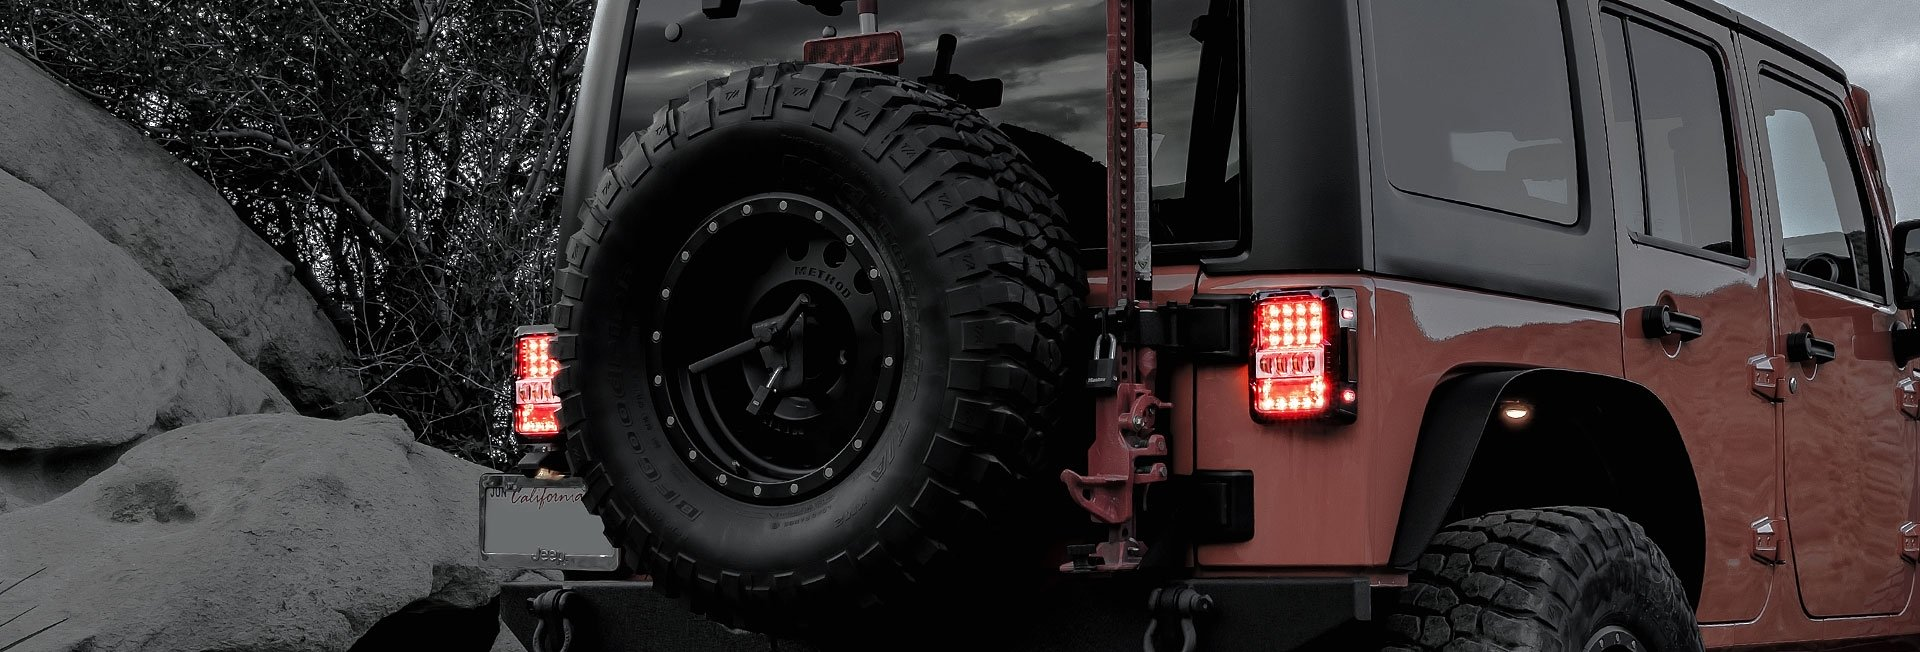 Jeep Tail Lights